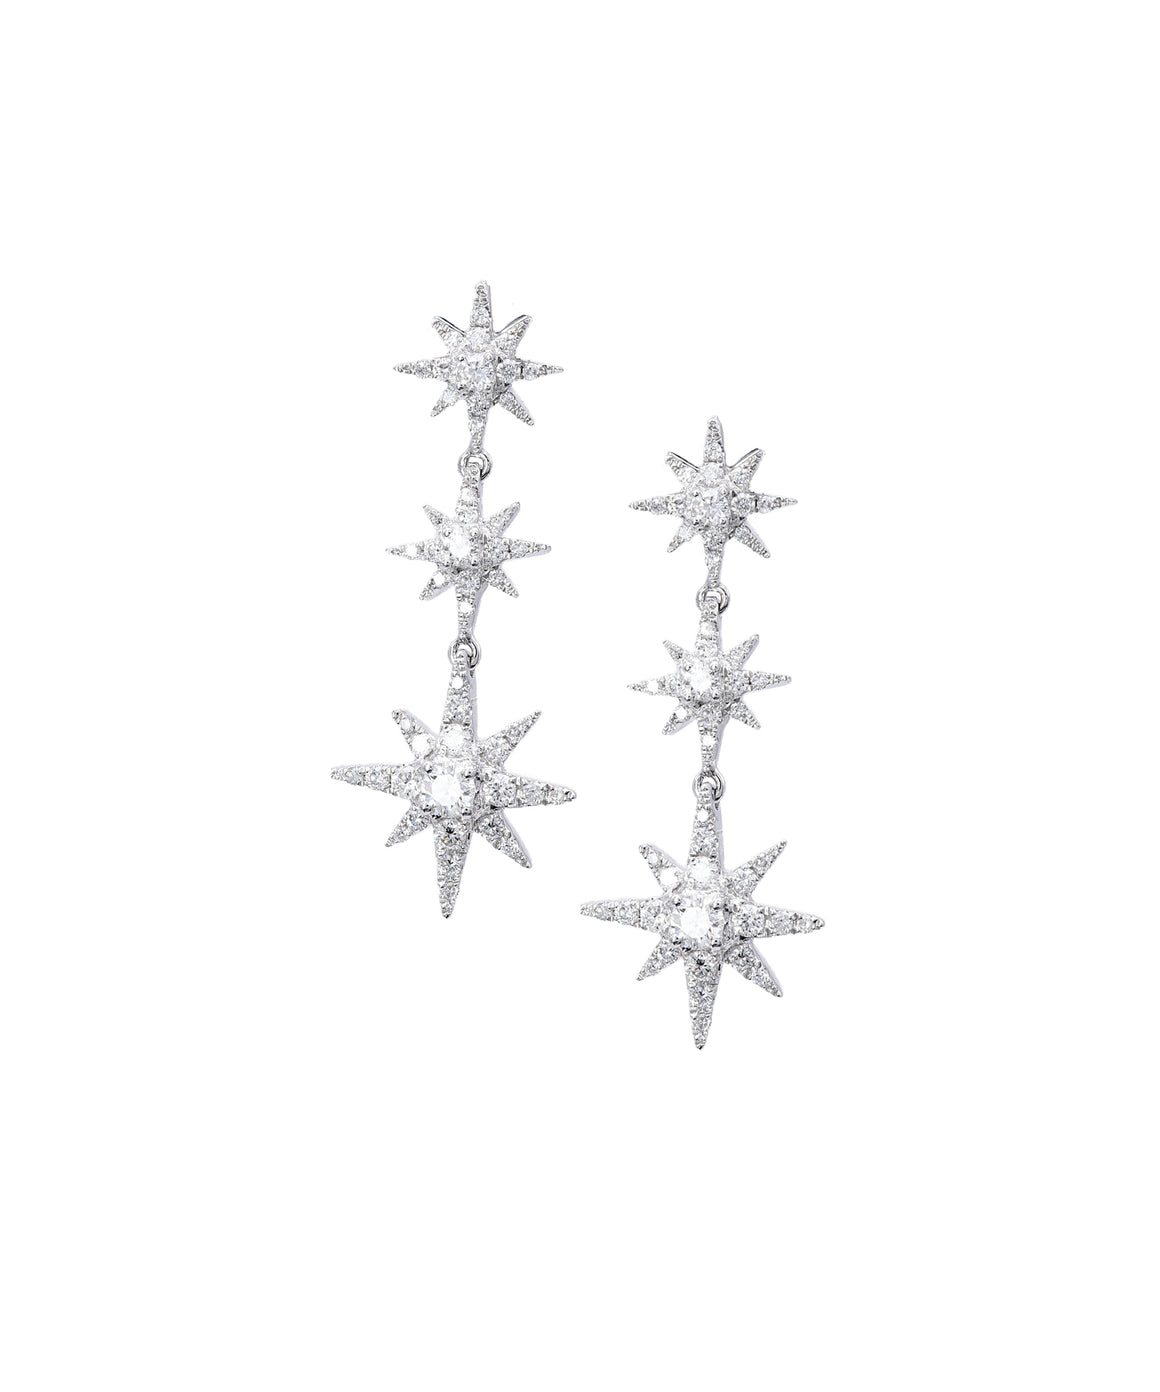 Diamond Star Drop Earrings - Lesley Ann Jewels